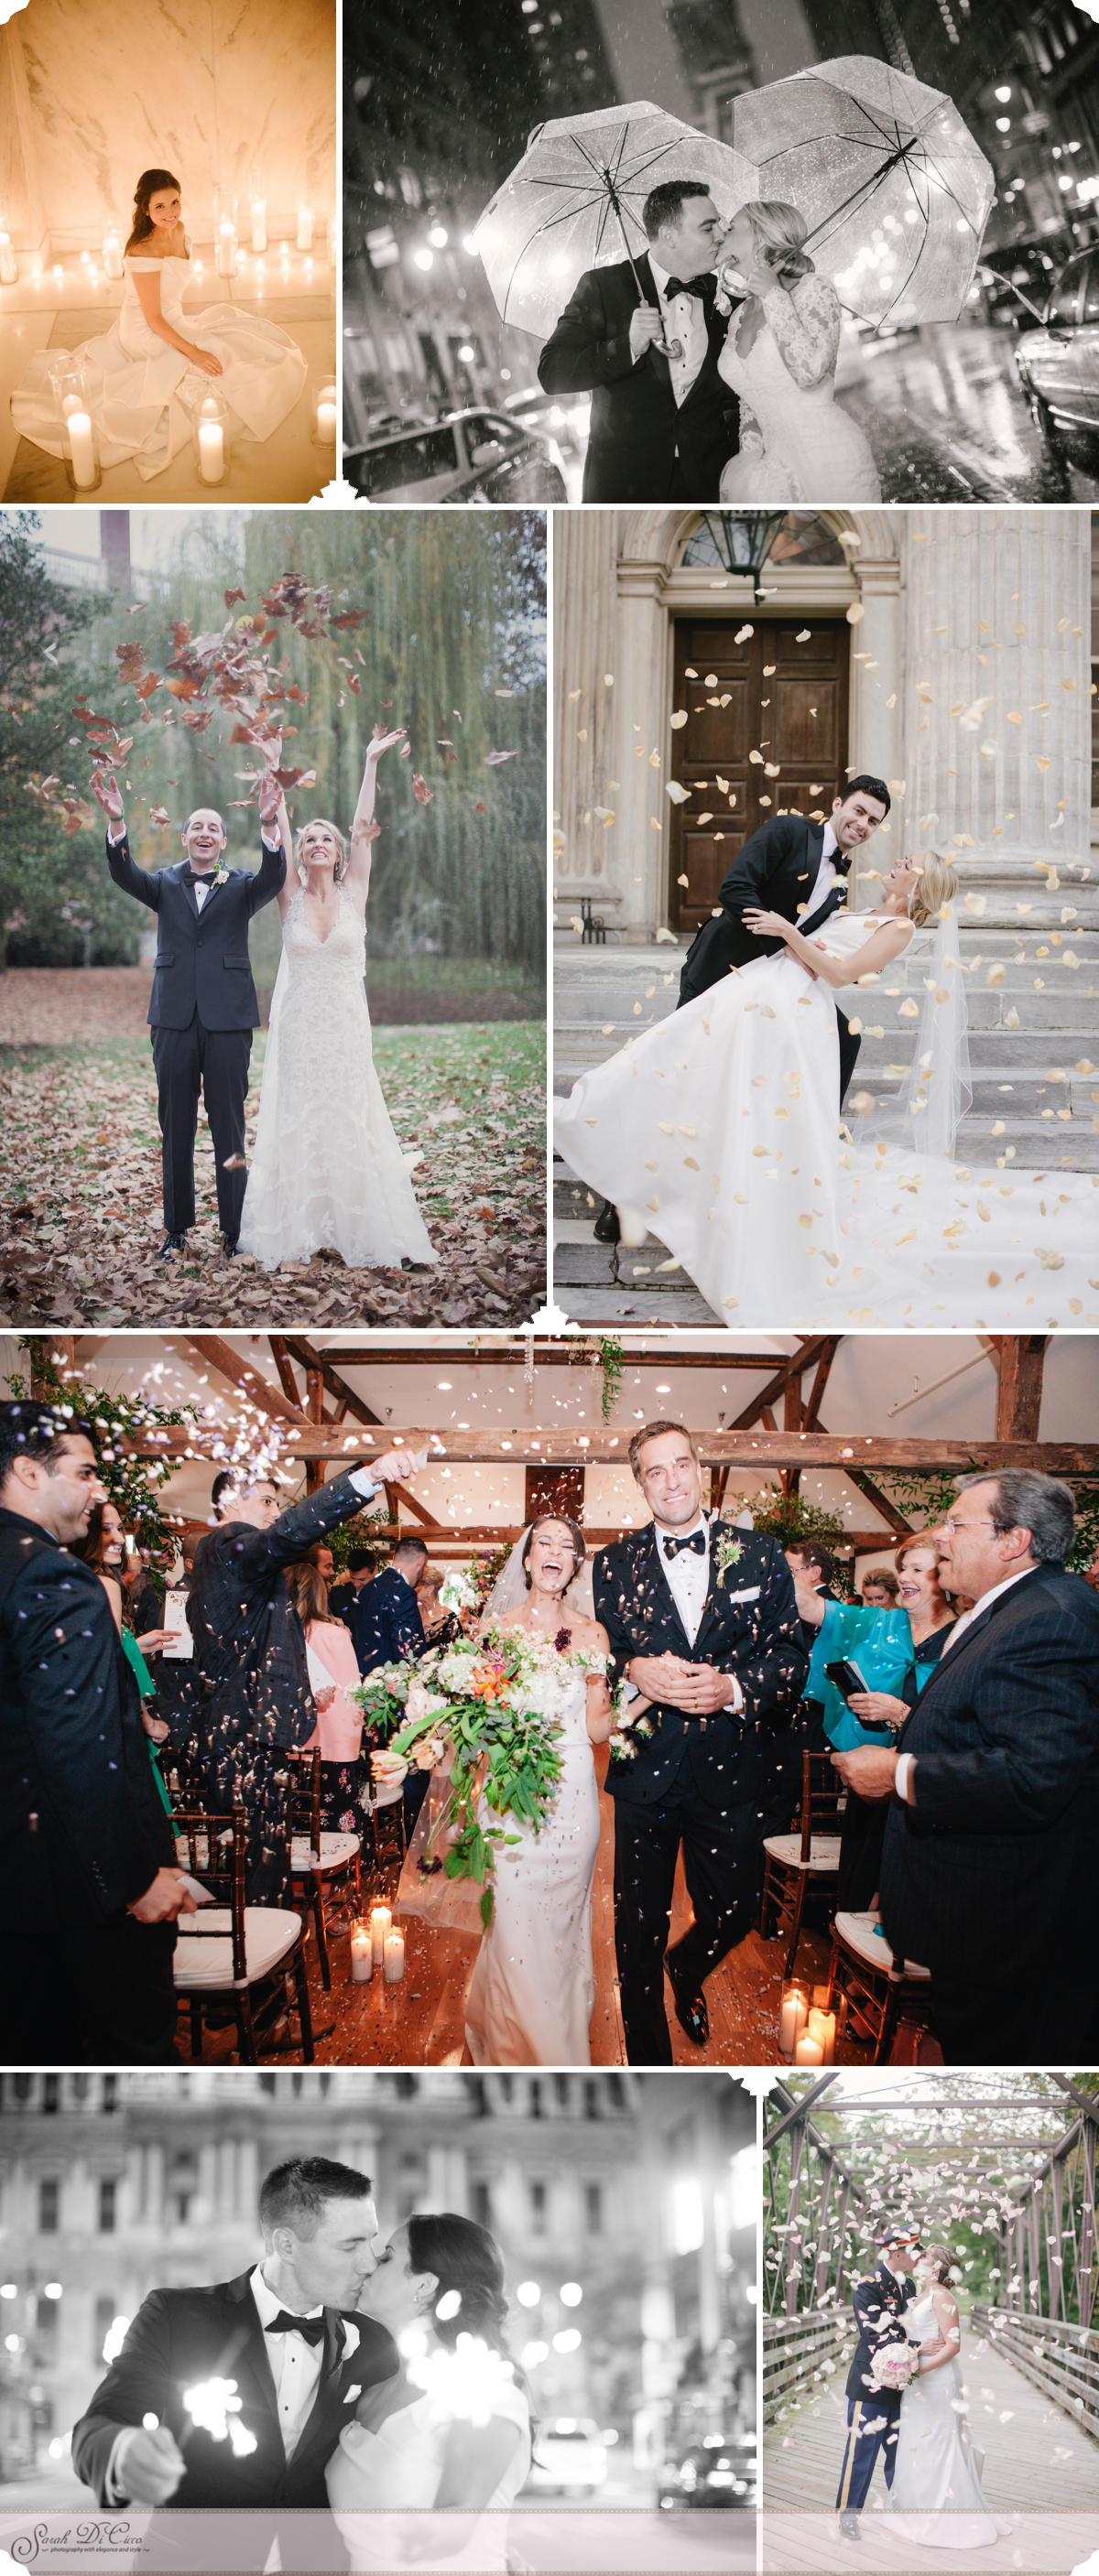 Petals and Sparkles Sarah DiCicco Photography - Year in Review 2018